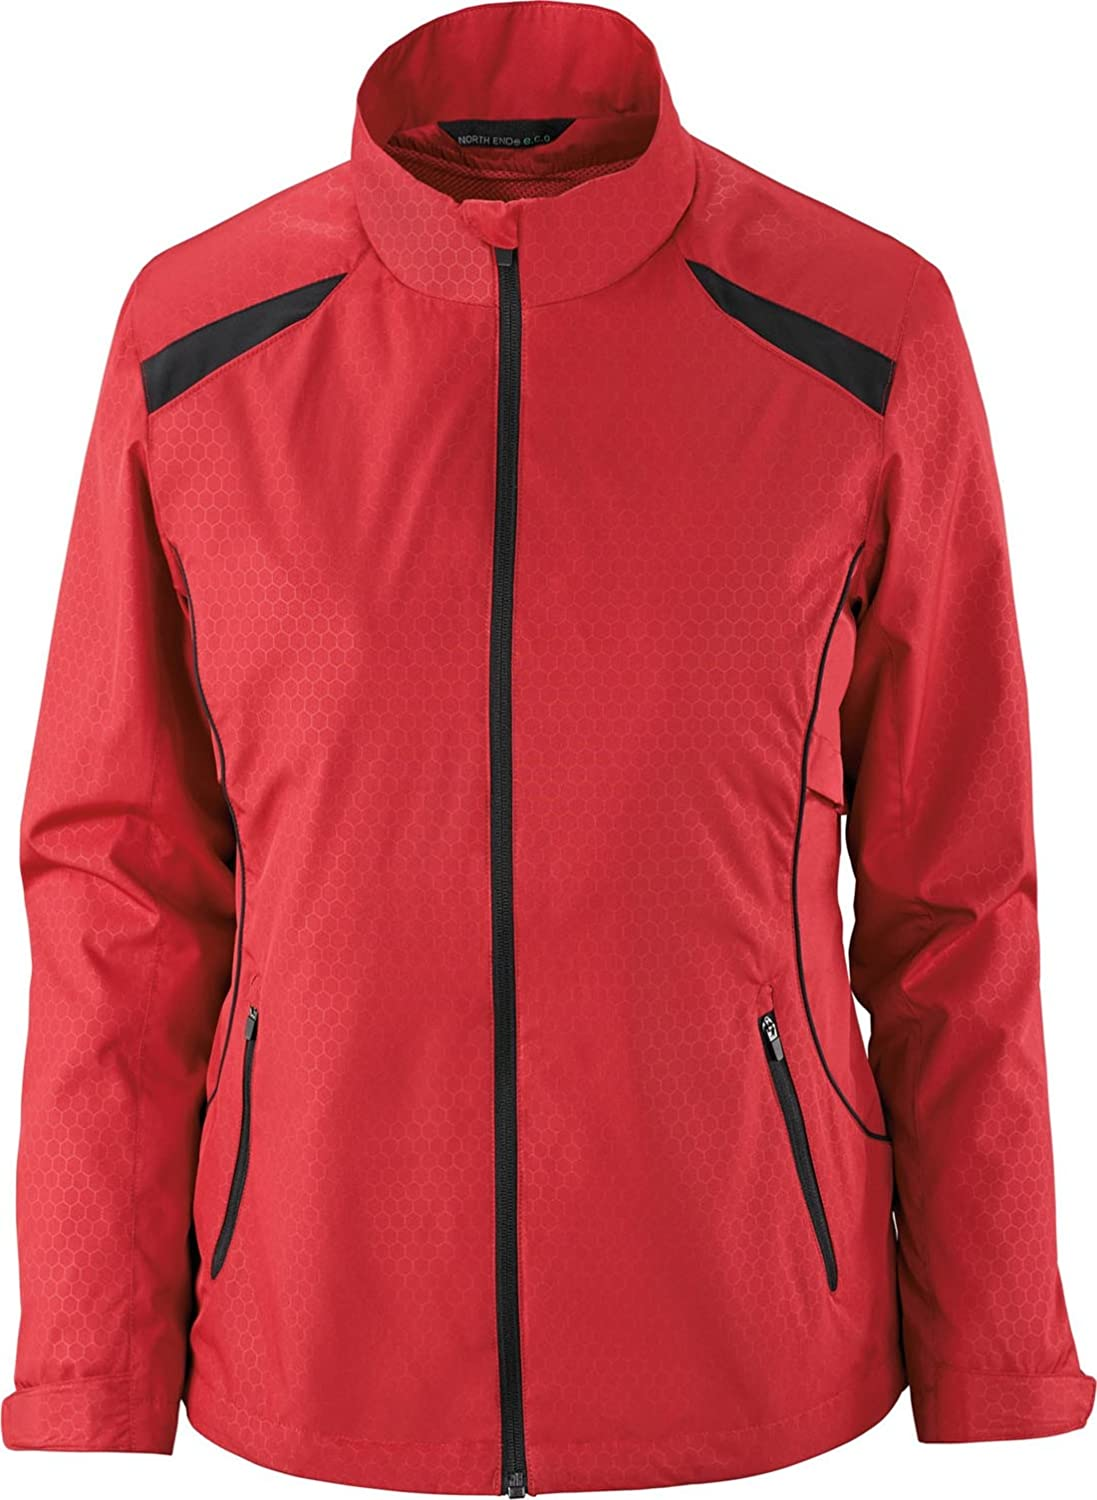 78188-Classic Red//... North End Ladies Lightweight Recycled Jacket